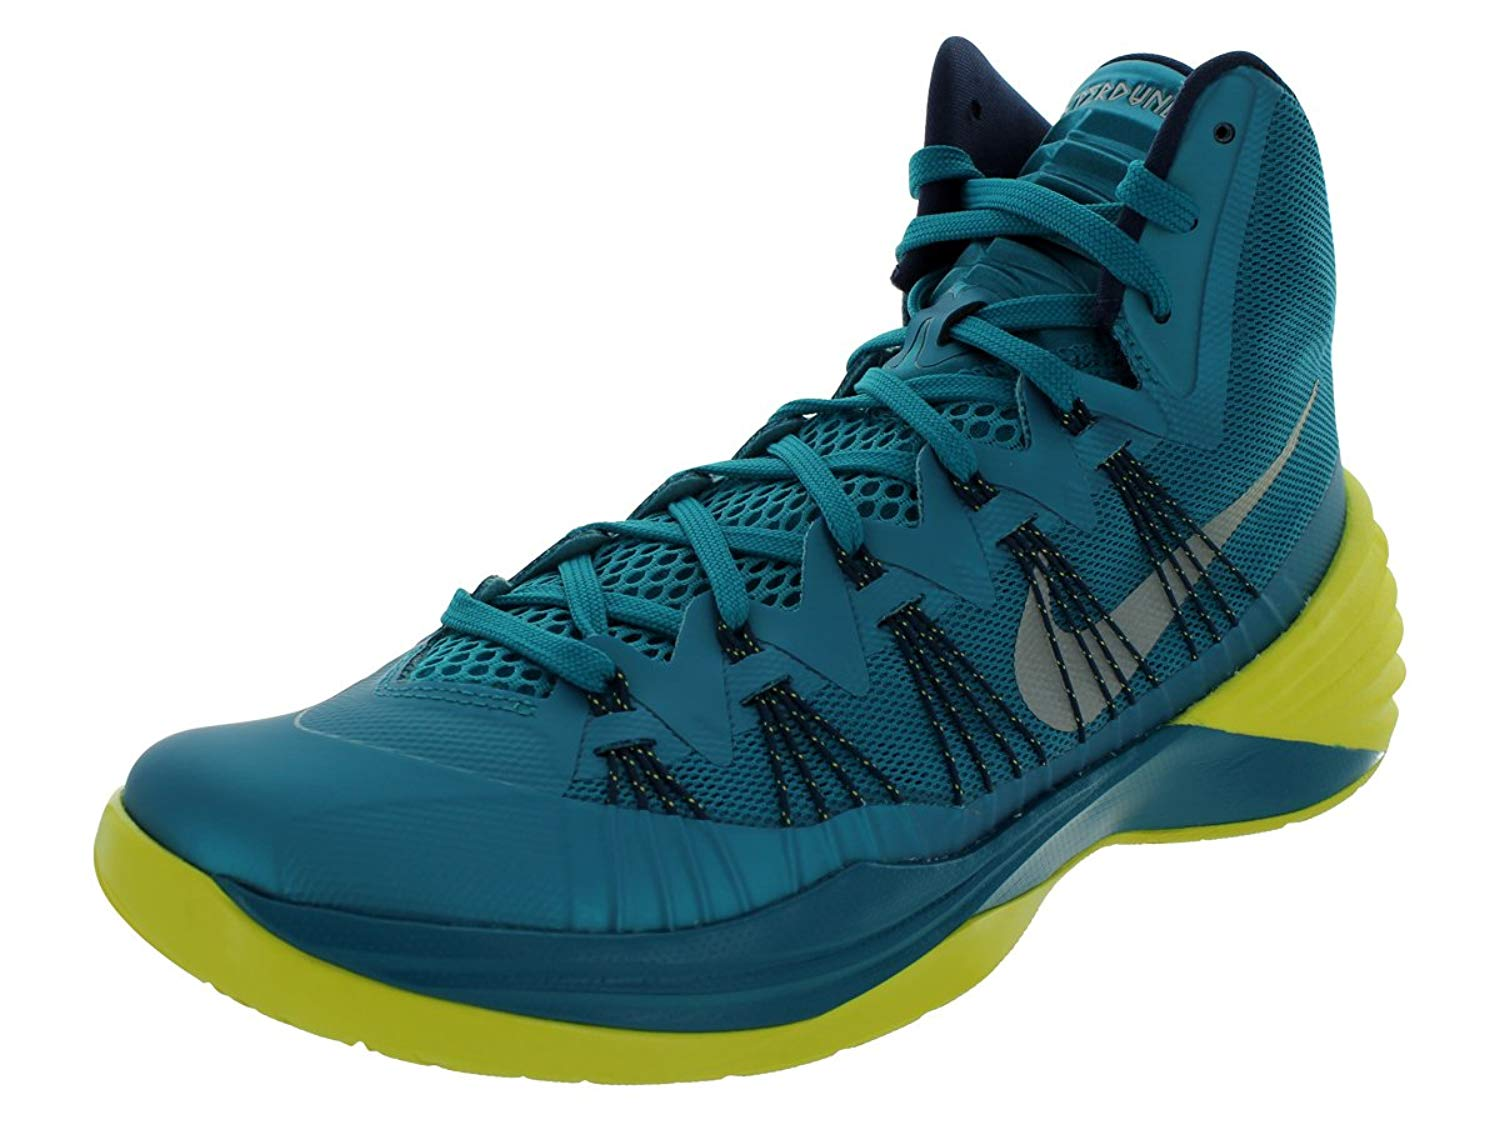 5936552ef899 Buy nike hyperdunk 2013 599537 400 mens basketball trainers sneakers ...